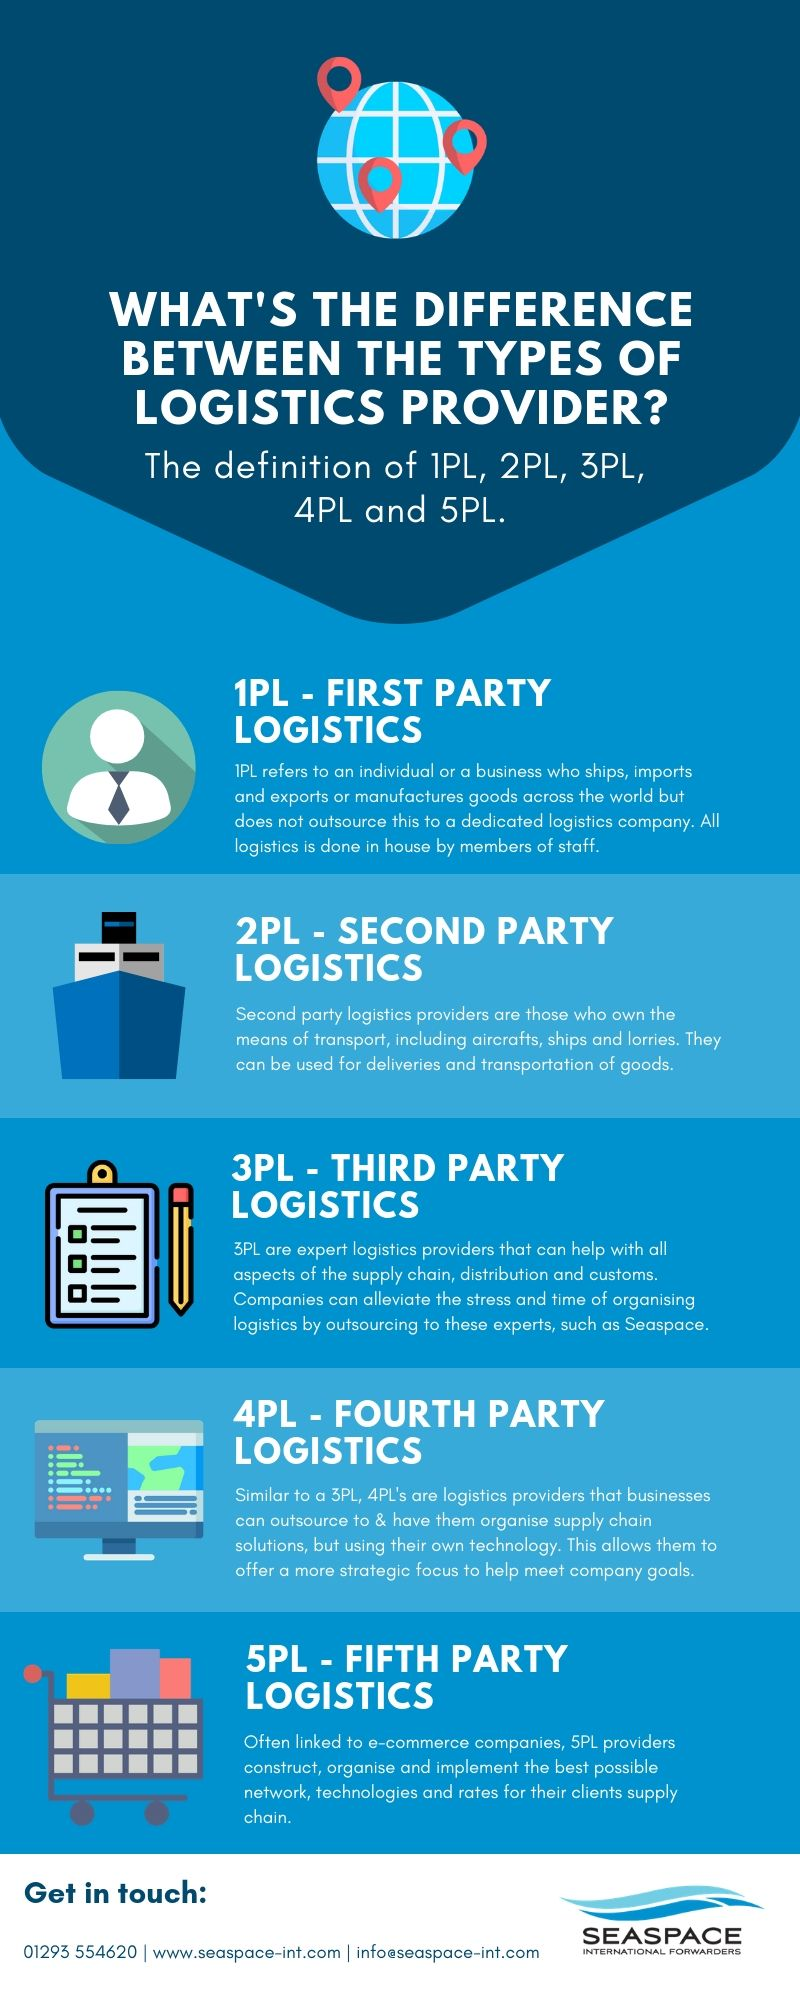 What's the difference between the types of logistics provider?